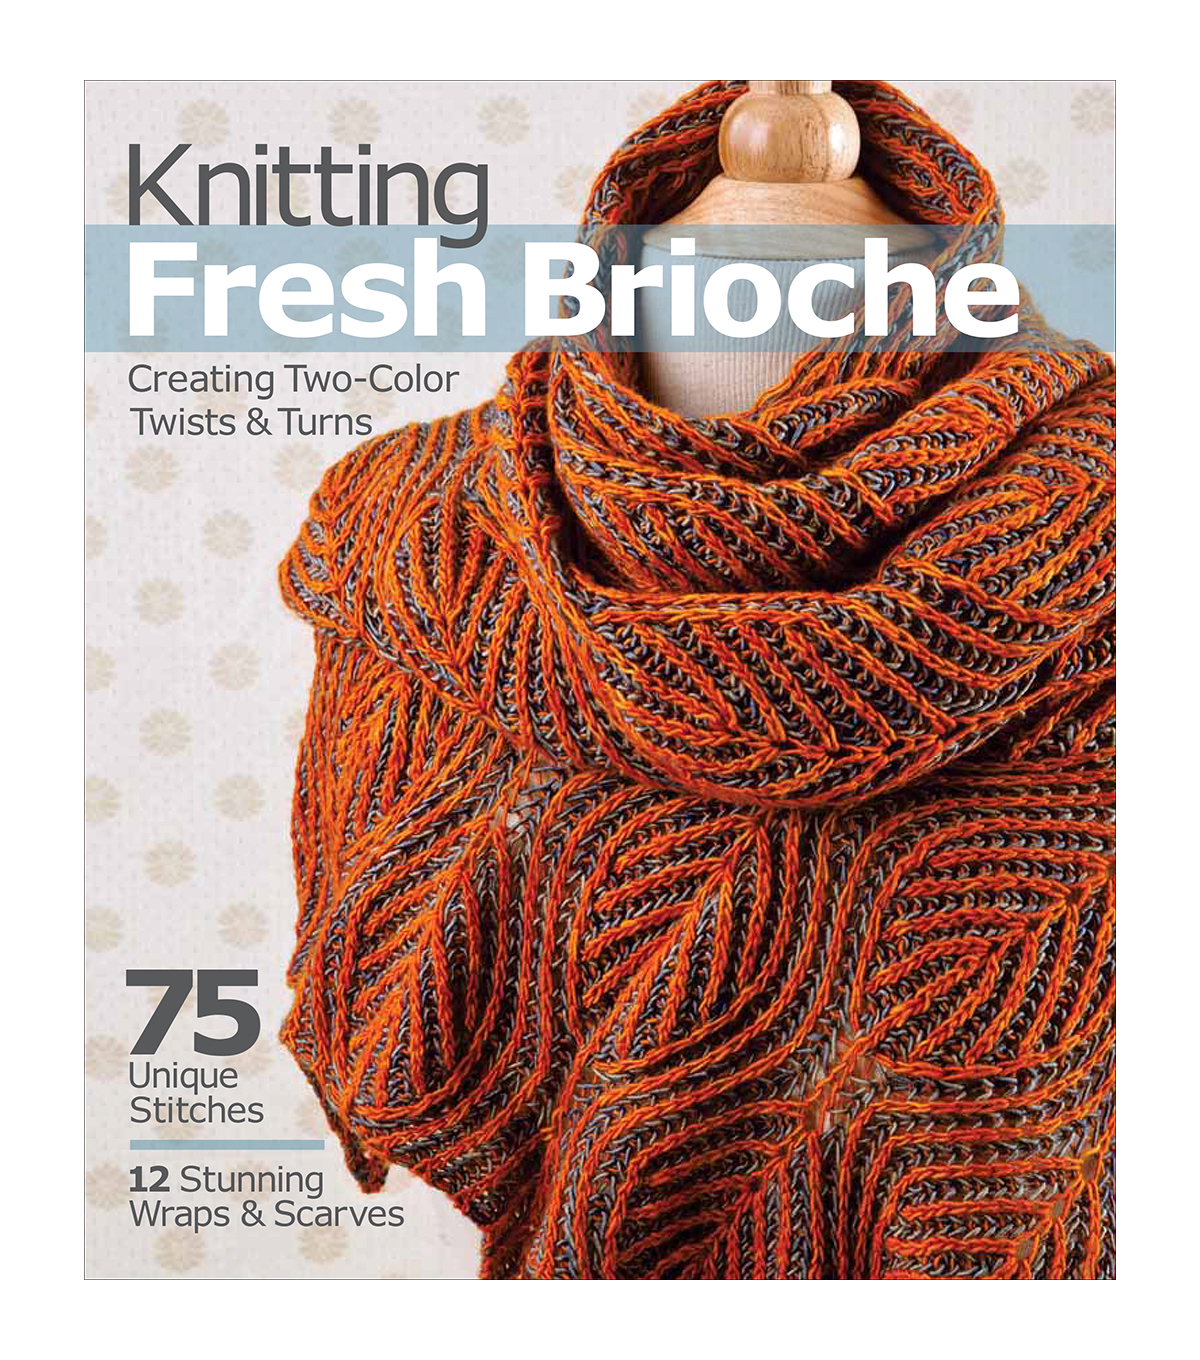 Knitting Fresh Brioche Book